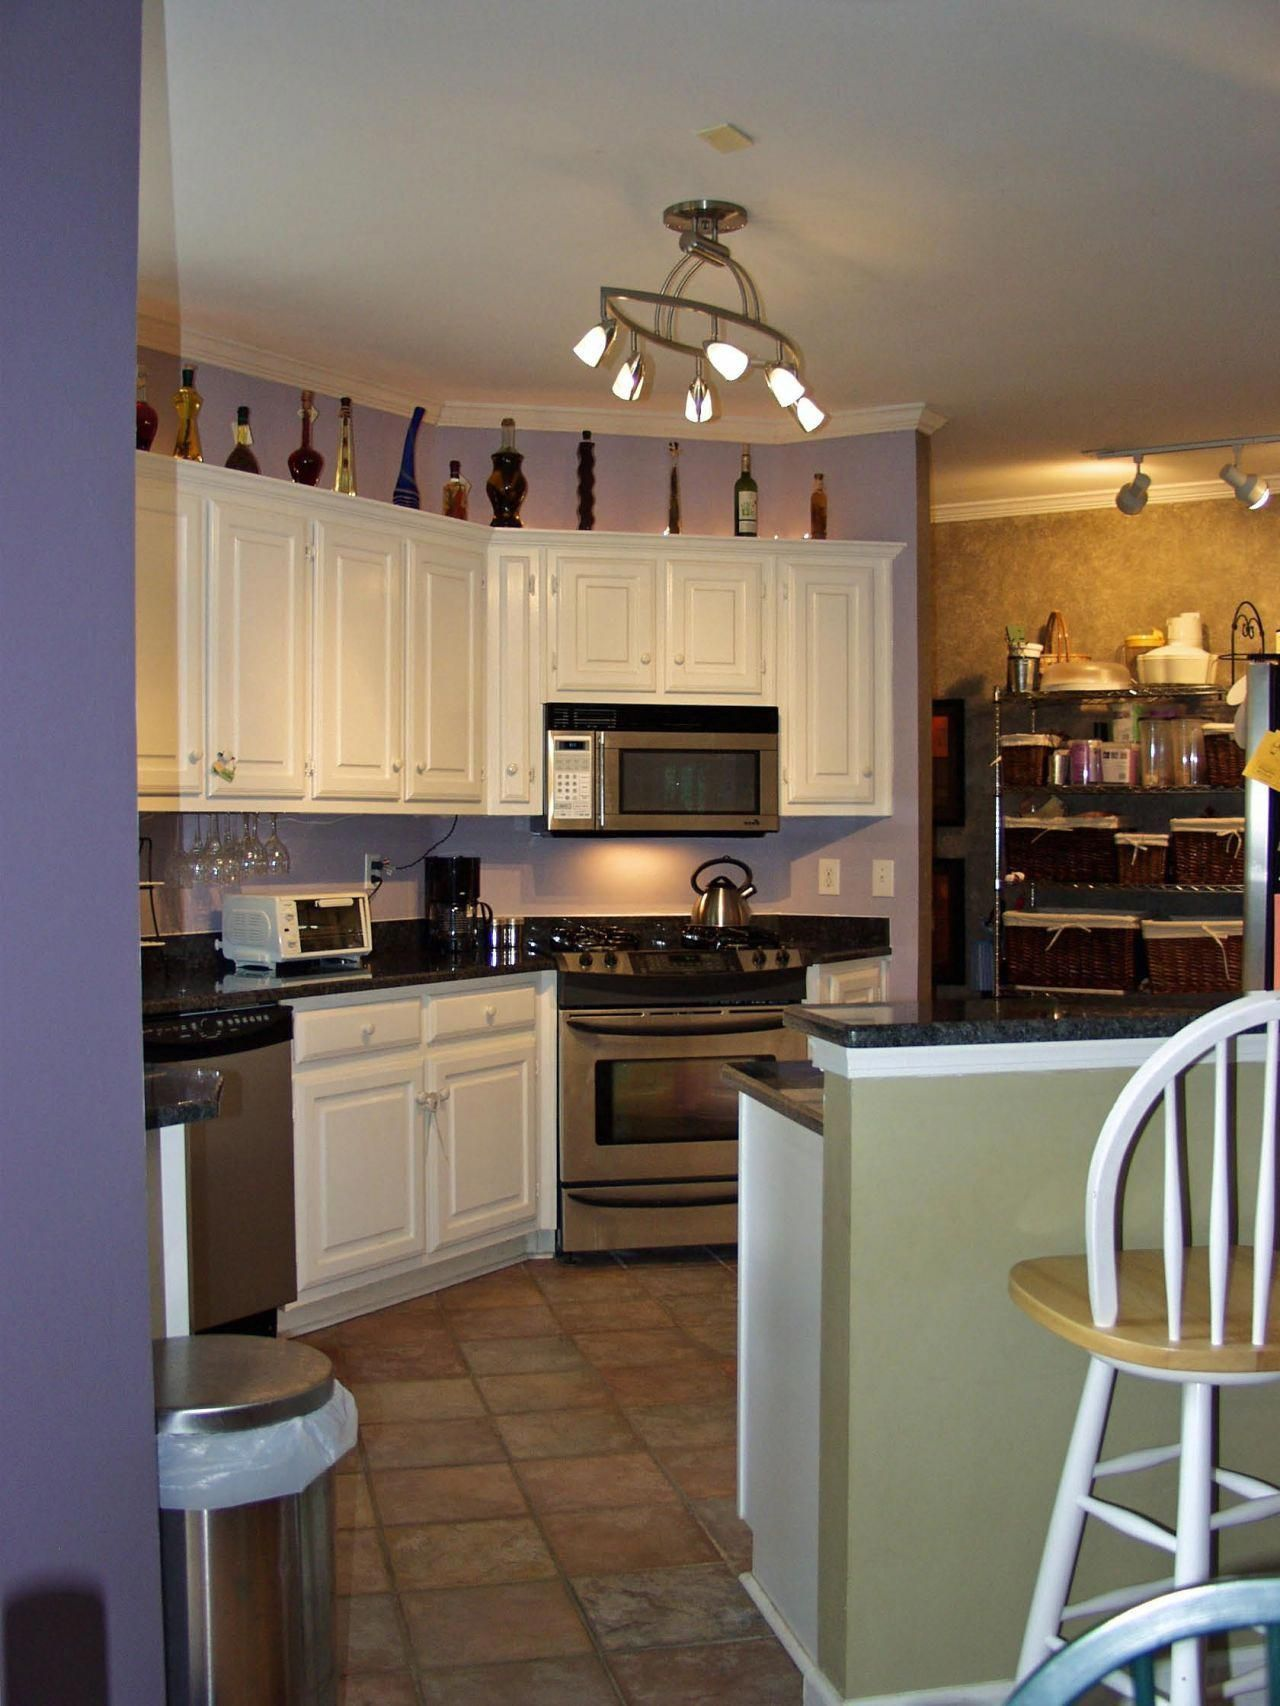 Brilliant Picture Of Kitchen Lighting Fixtures For Low Ceilings